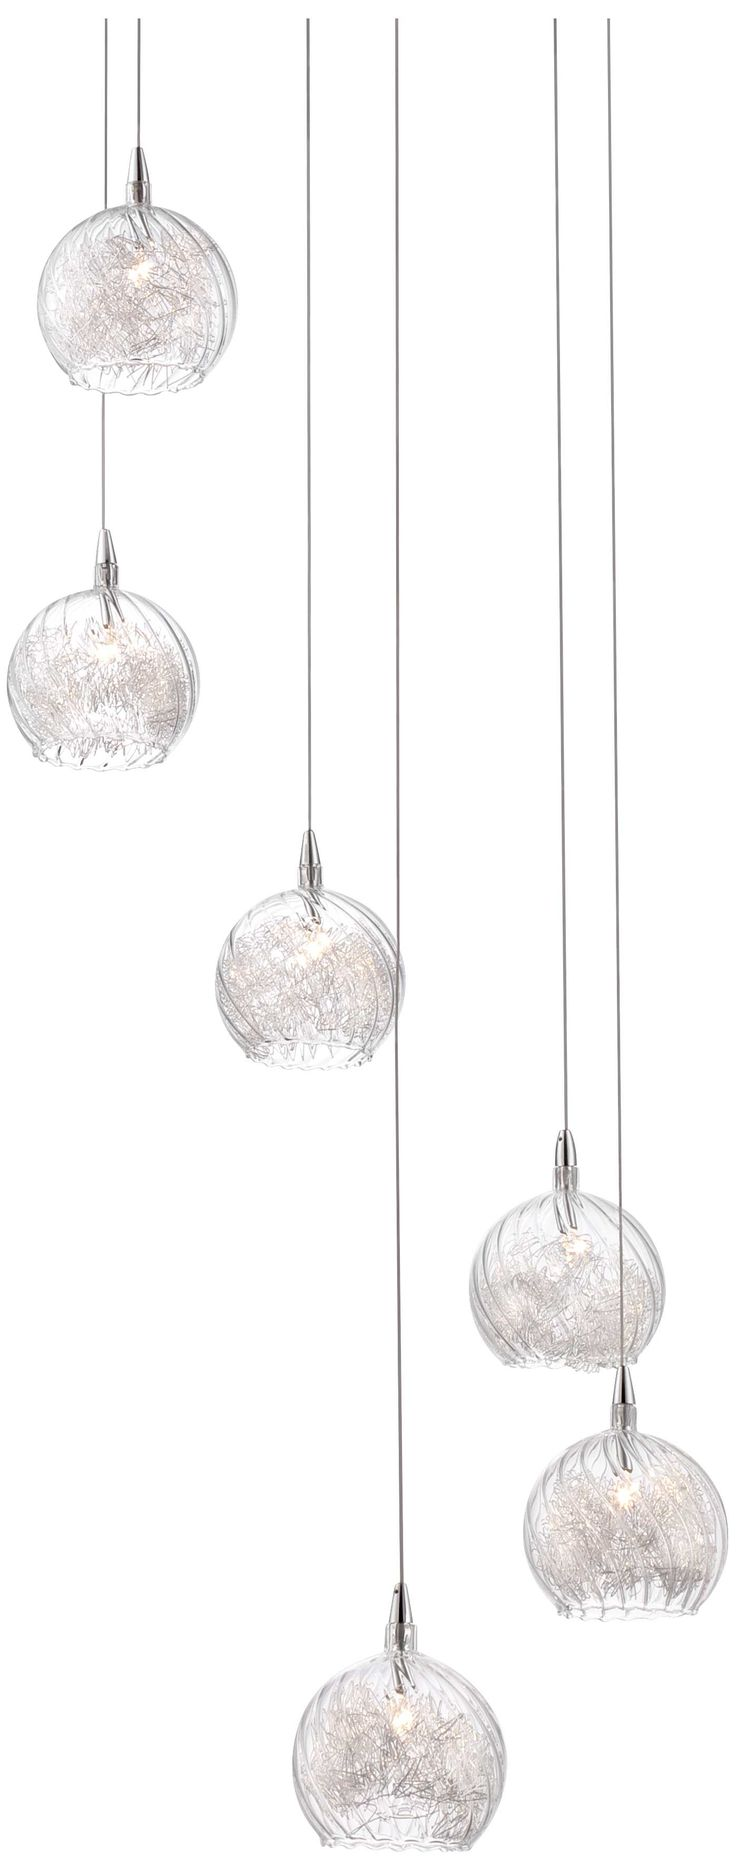 Exceptional Possini Euro Encircled Crystal 48 1/4 Design Inspirations